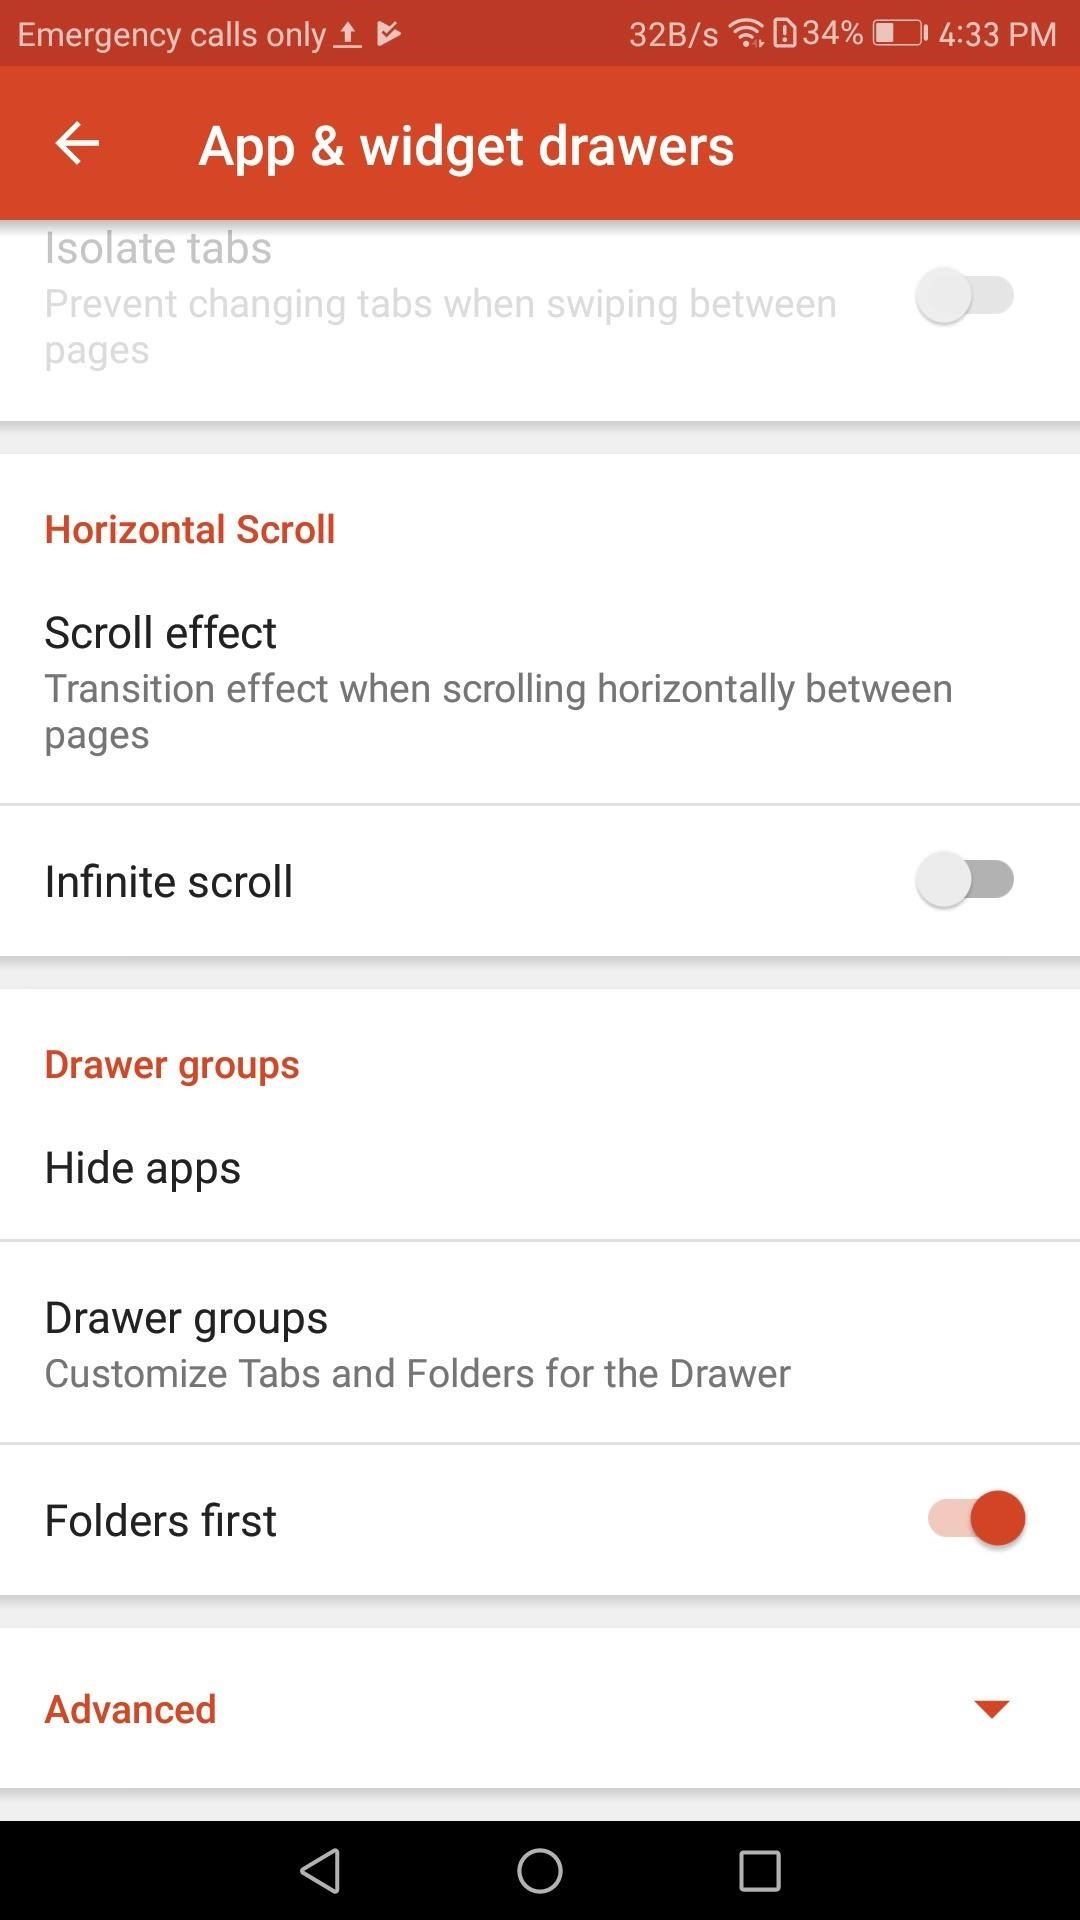 Nova Launcher 101: How to Hide Apps to Remove Icons & Free Up Space in Your App Drawer